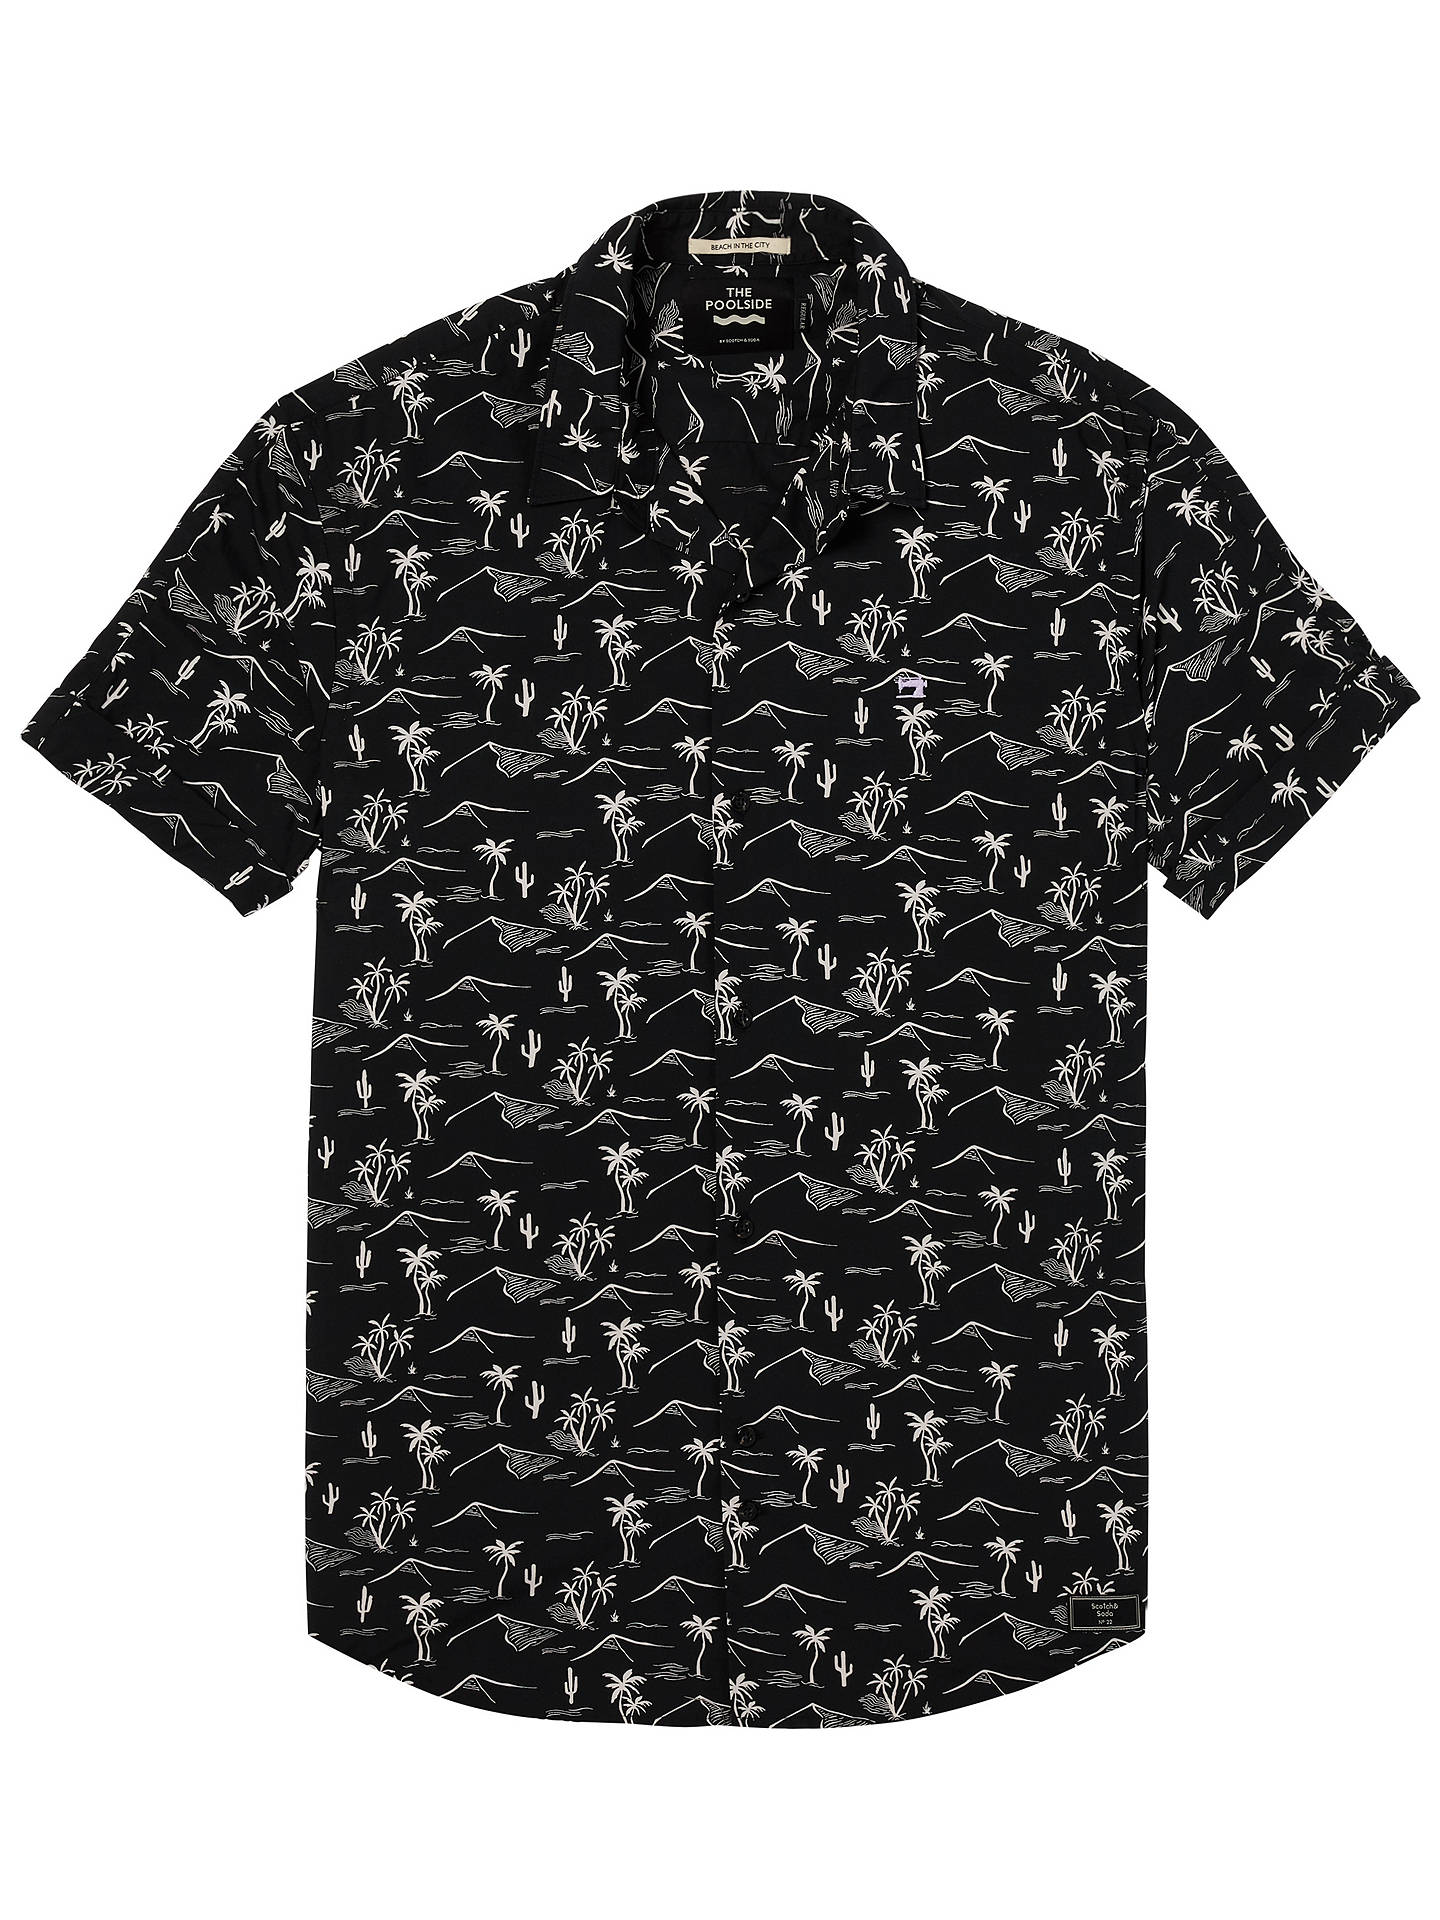 BuyScotch & Soda Poolside Short Sleeve Shirt, Black, S Online at johnlewis.com